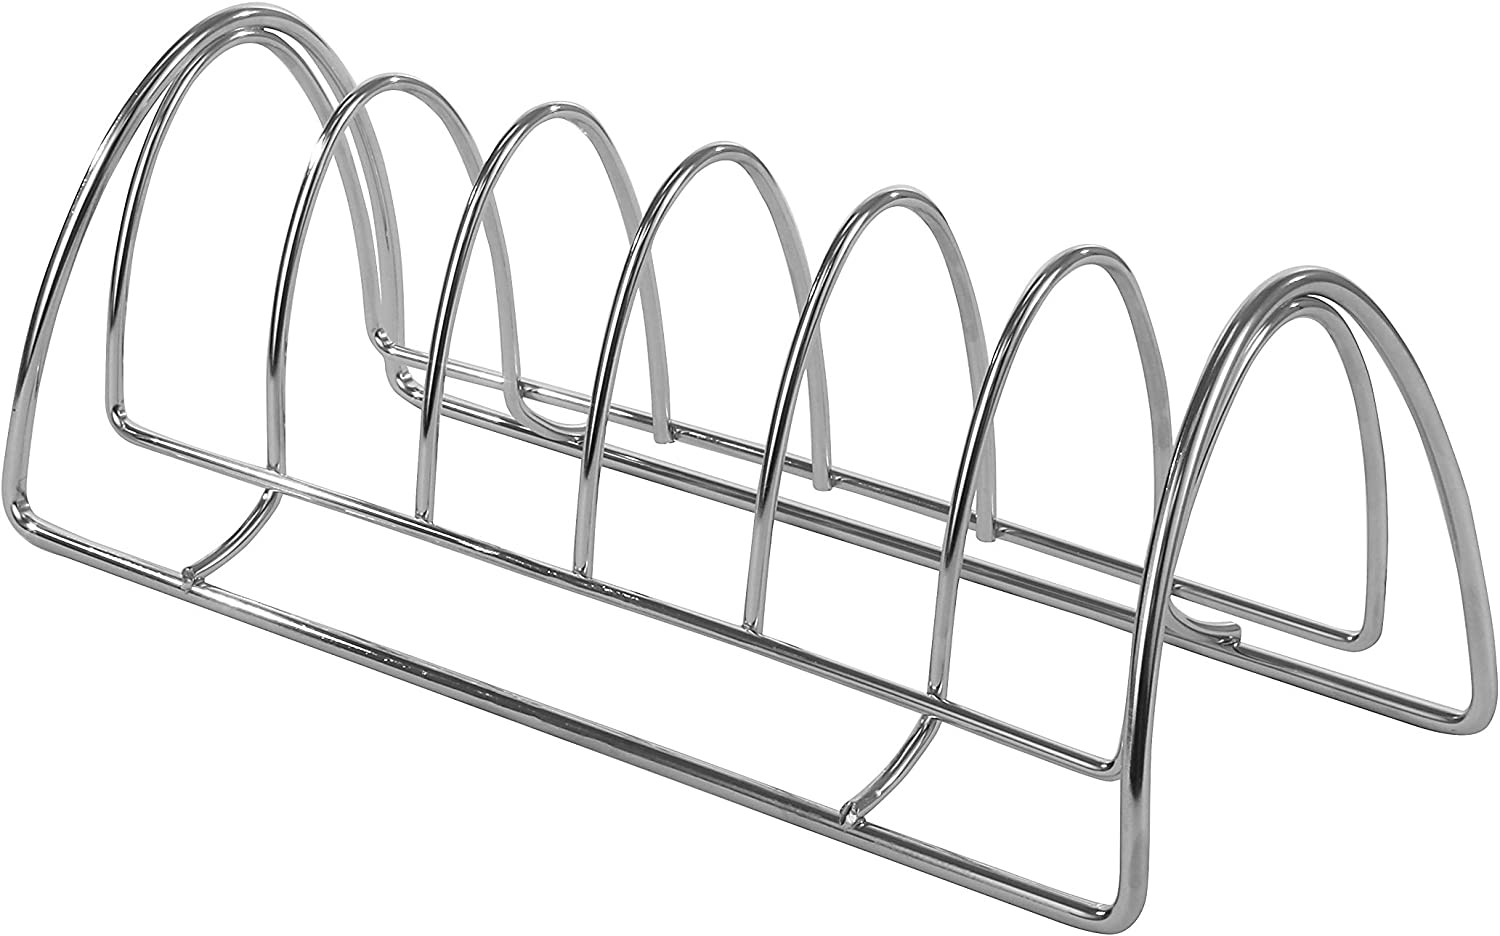 Spectrum Diversified St. Louis Kitchen Lid Holder Organizer for Plates, Cutting Boards Bakeware, Cooling Racks, Pots & Pans, Serving Trays, and Reusable Containers, Chrome